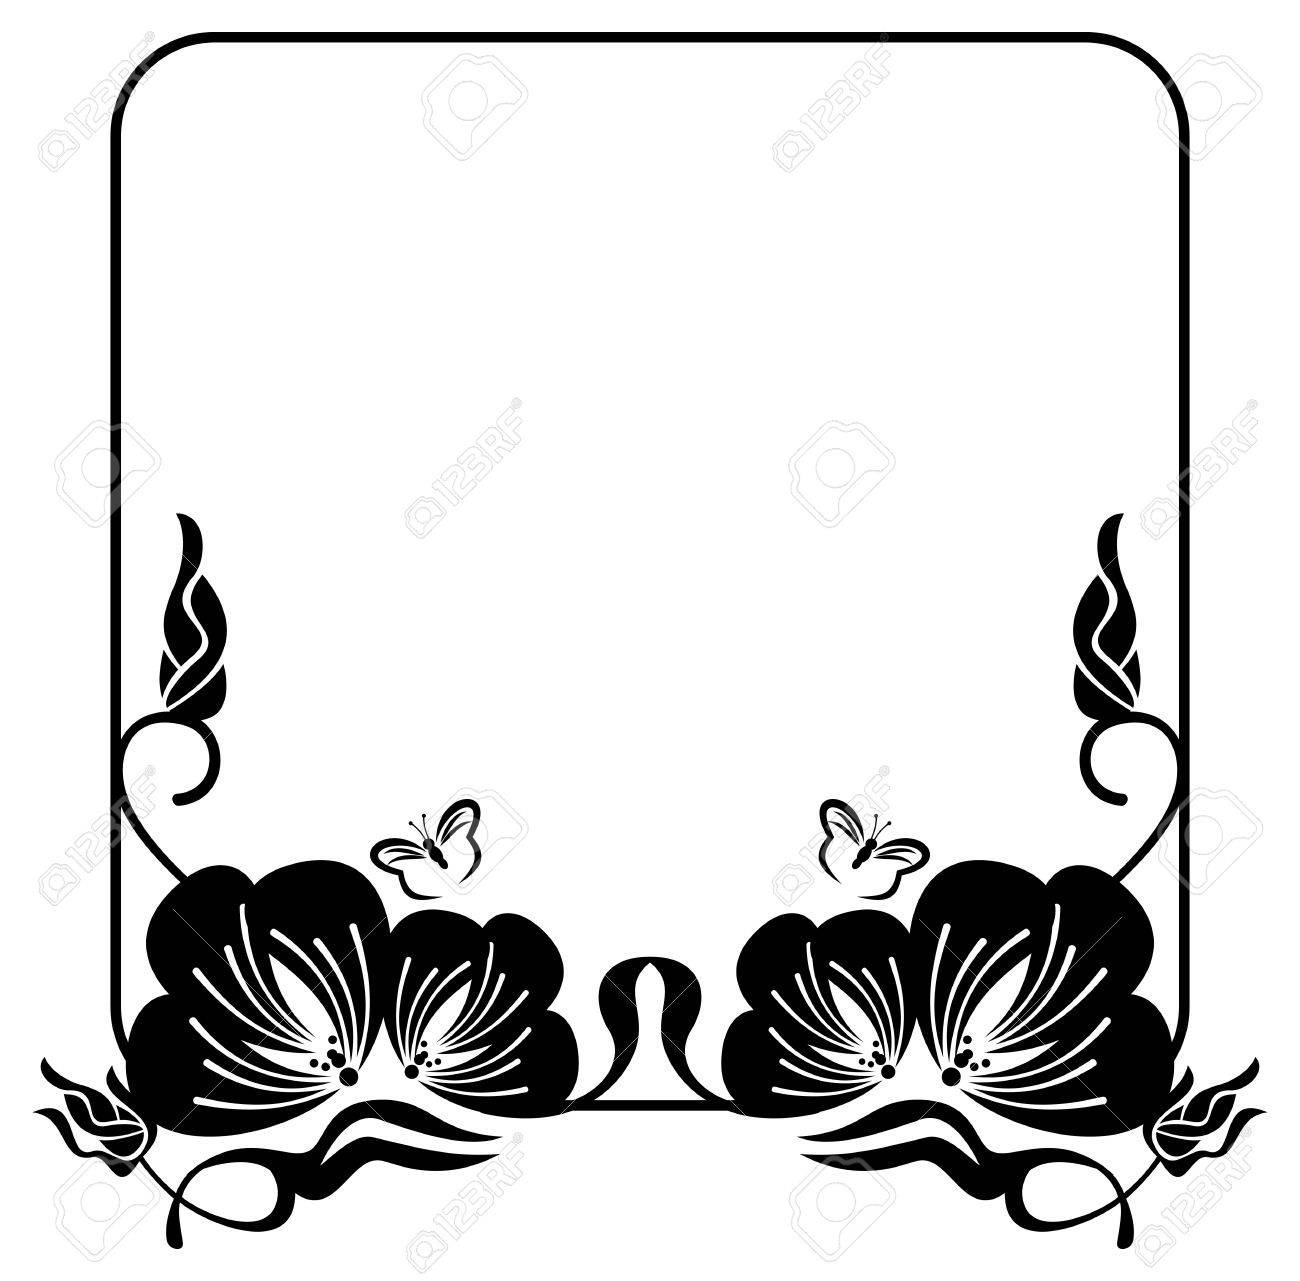 1300x1281 Square Flower Silhouette Frame With Free Space For Text Or Photo